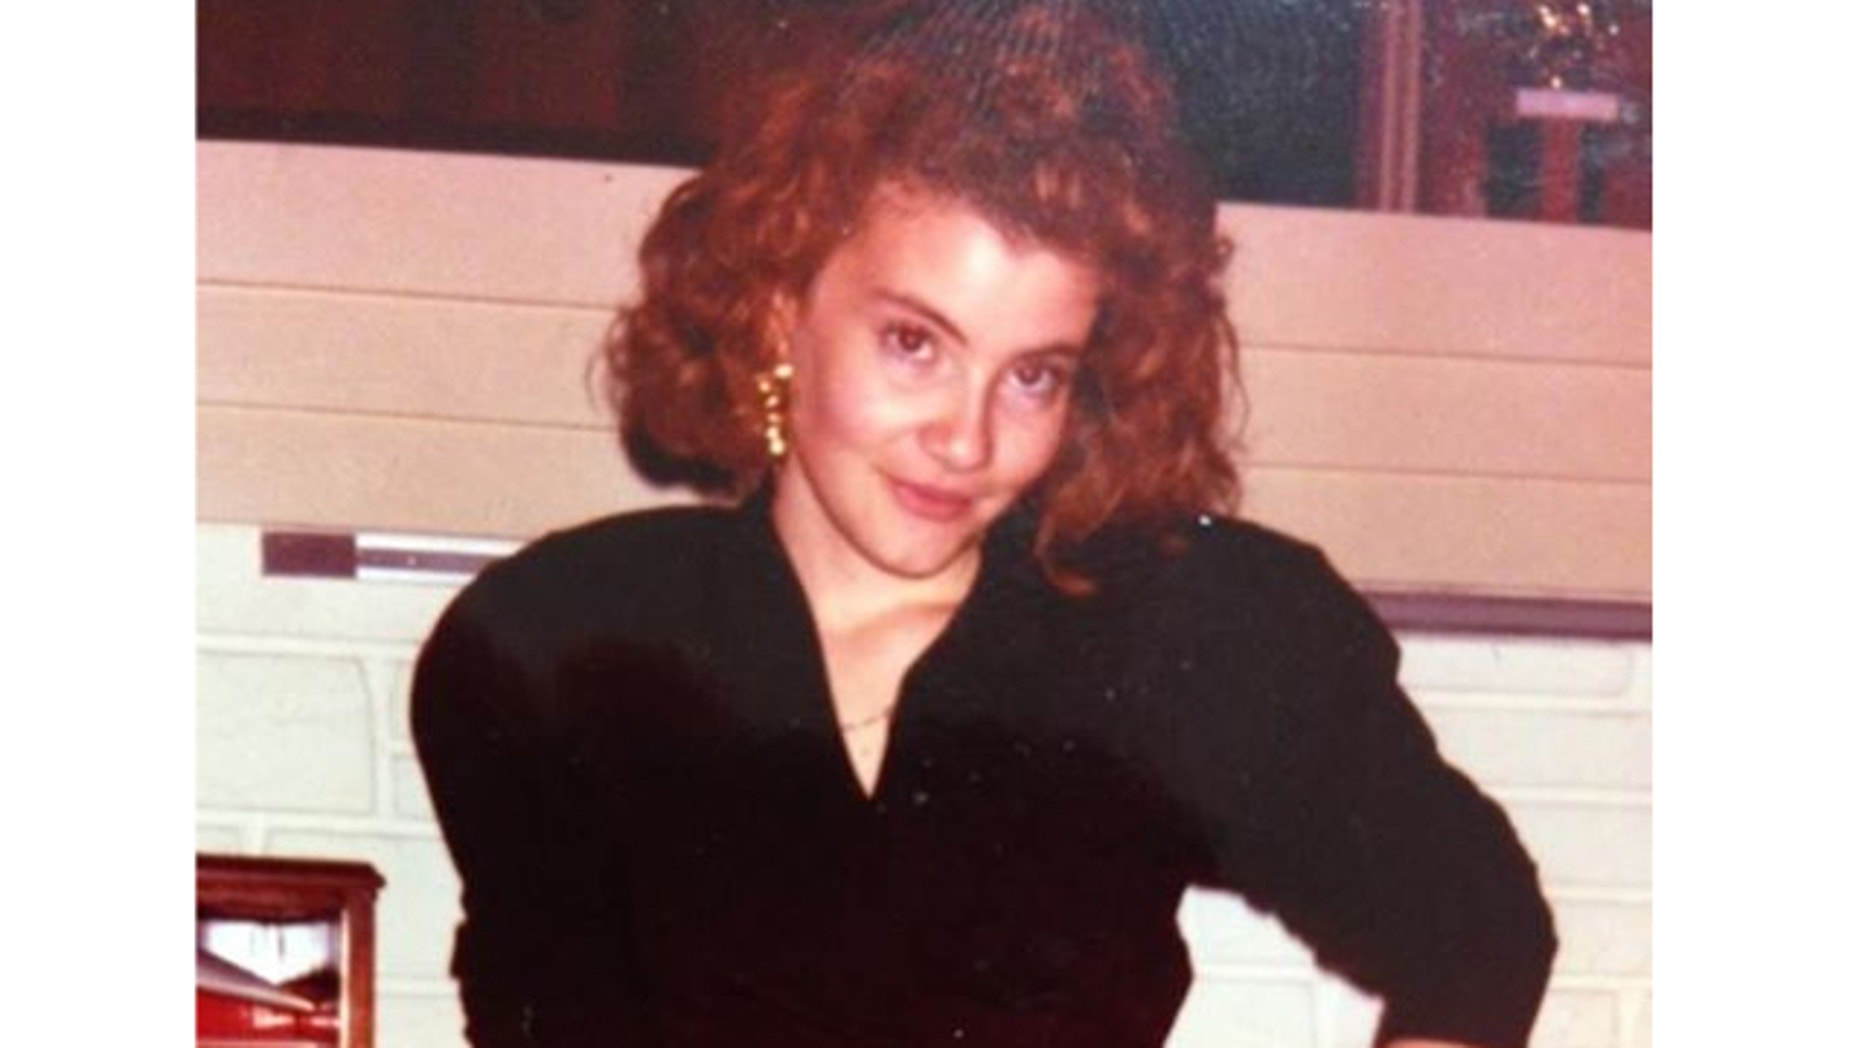 UNDATED: Ivelisse Berrios Beguerisse, 20, was found strangled to death in Coral Springs, Fla., on Nov. 27, 1990.